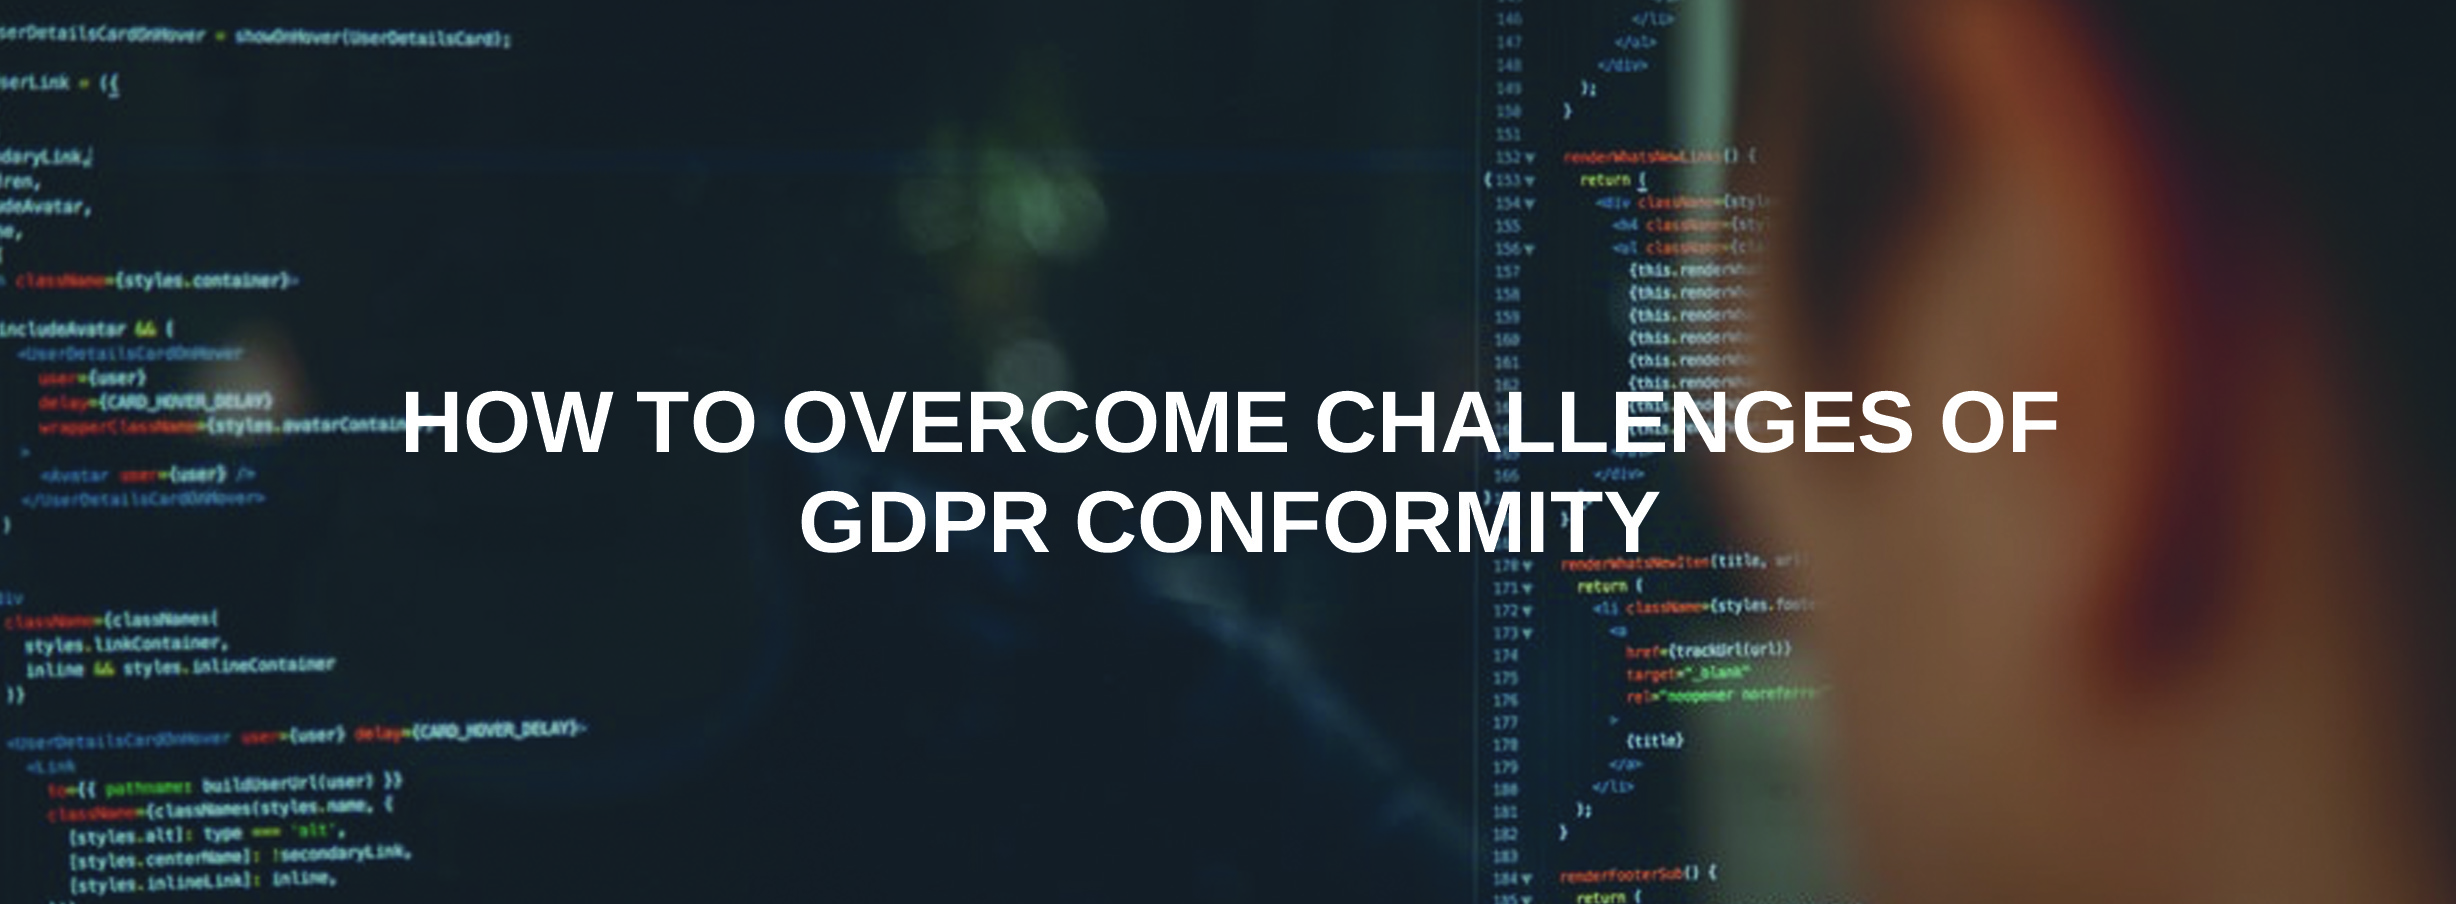 How to Overcome Challenges of GDPR Conformity